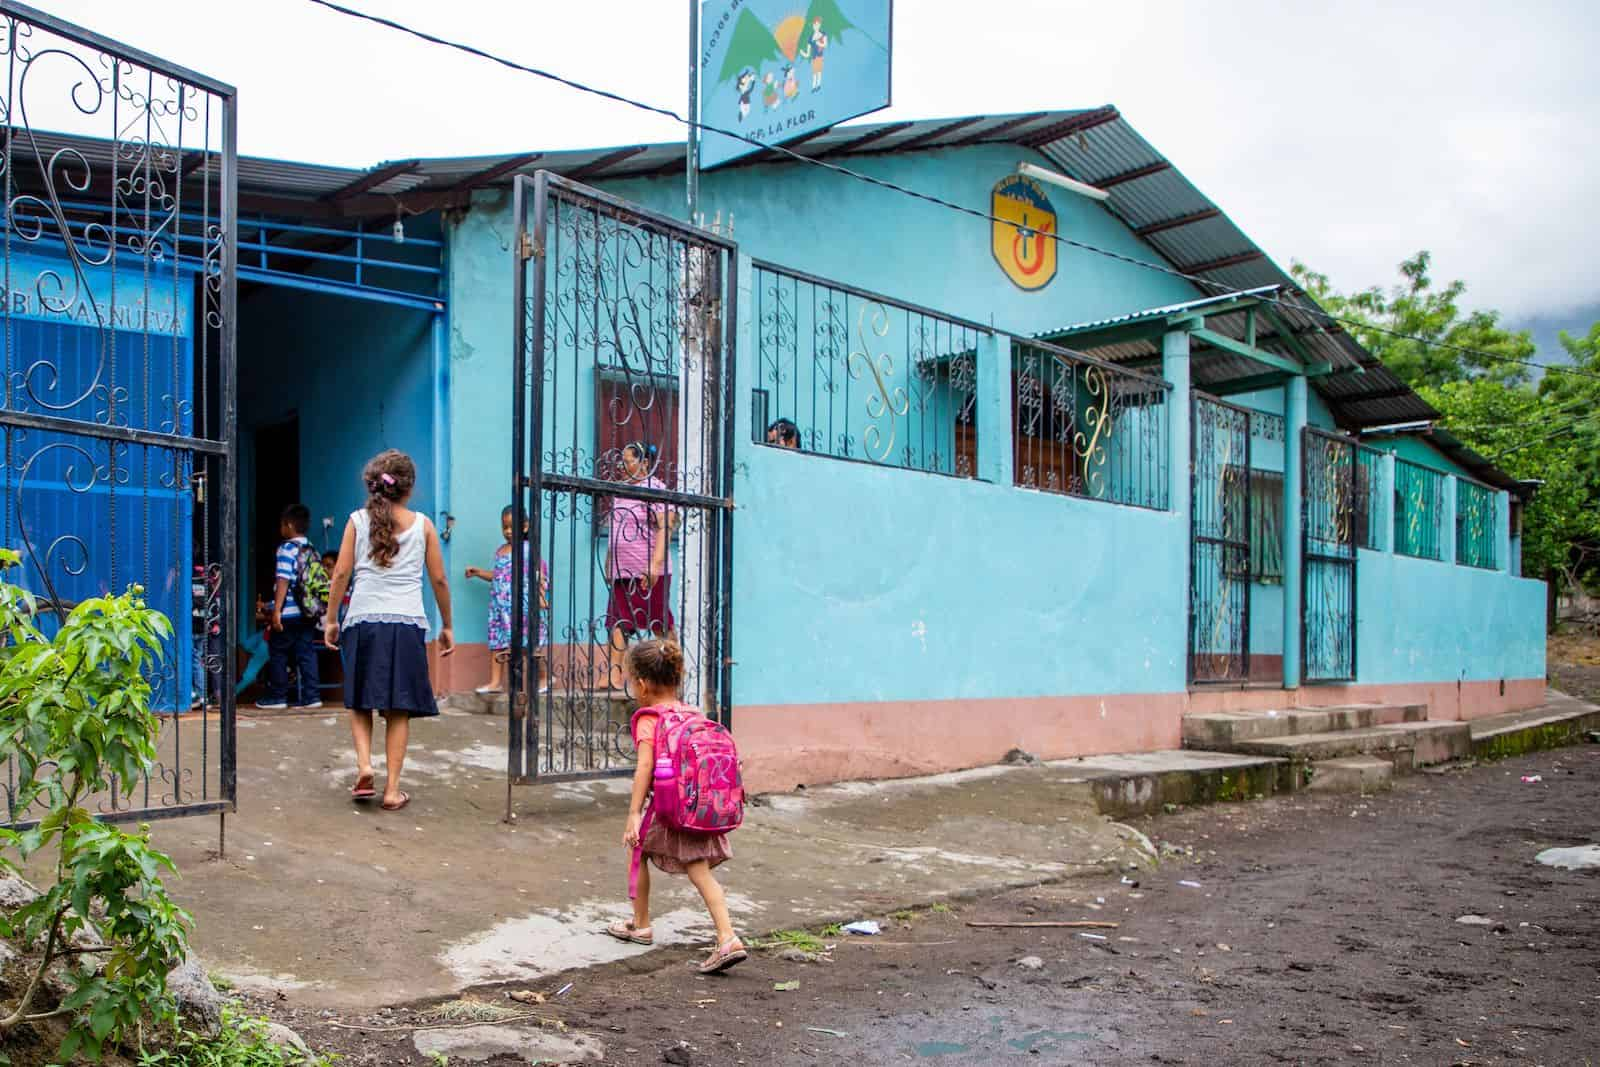 Children walk into a turquoise child development center where people were impacted by Nicaragua unrest.